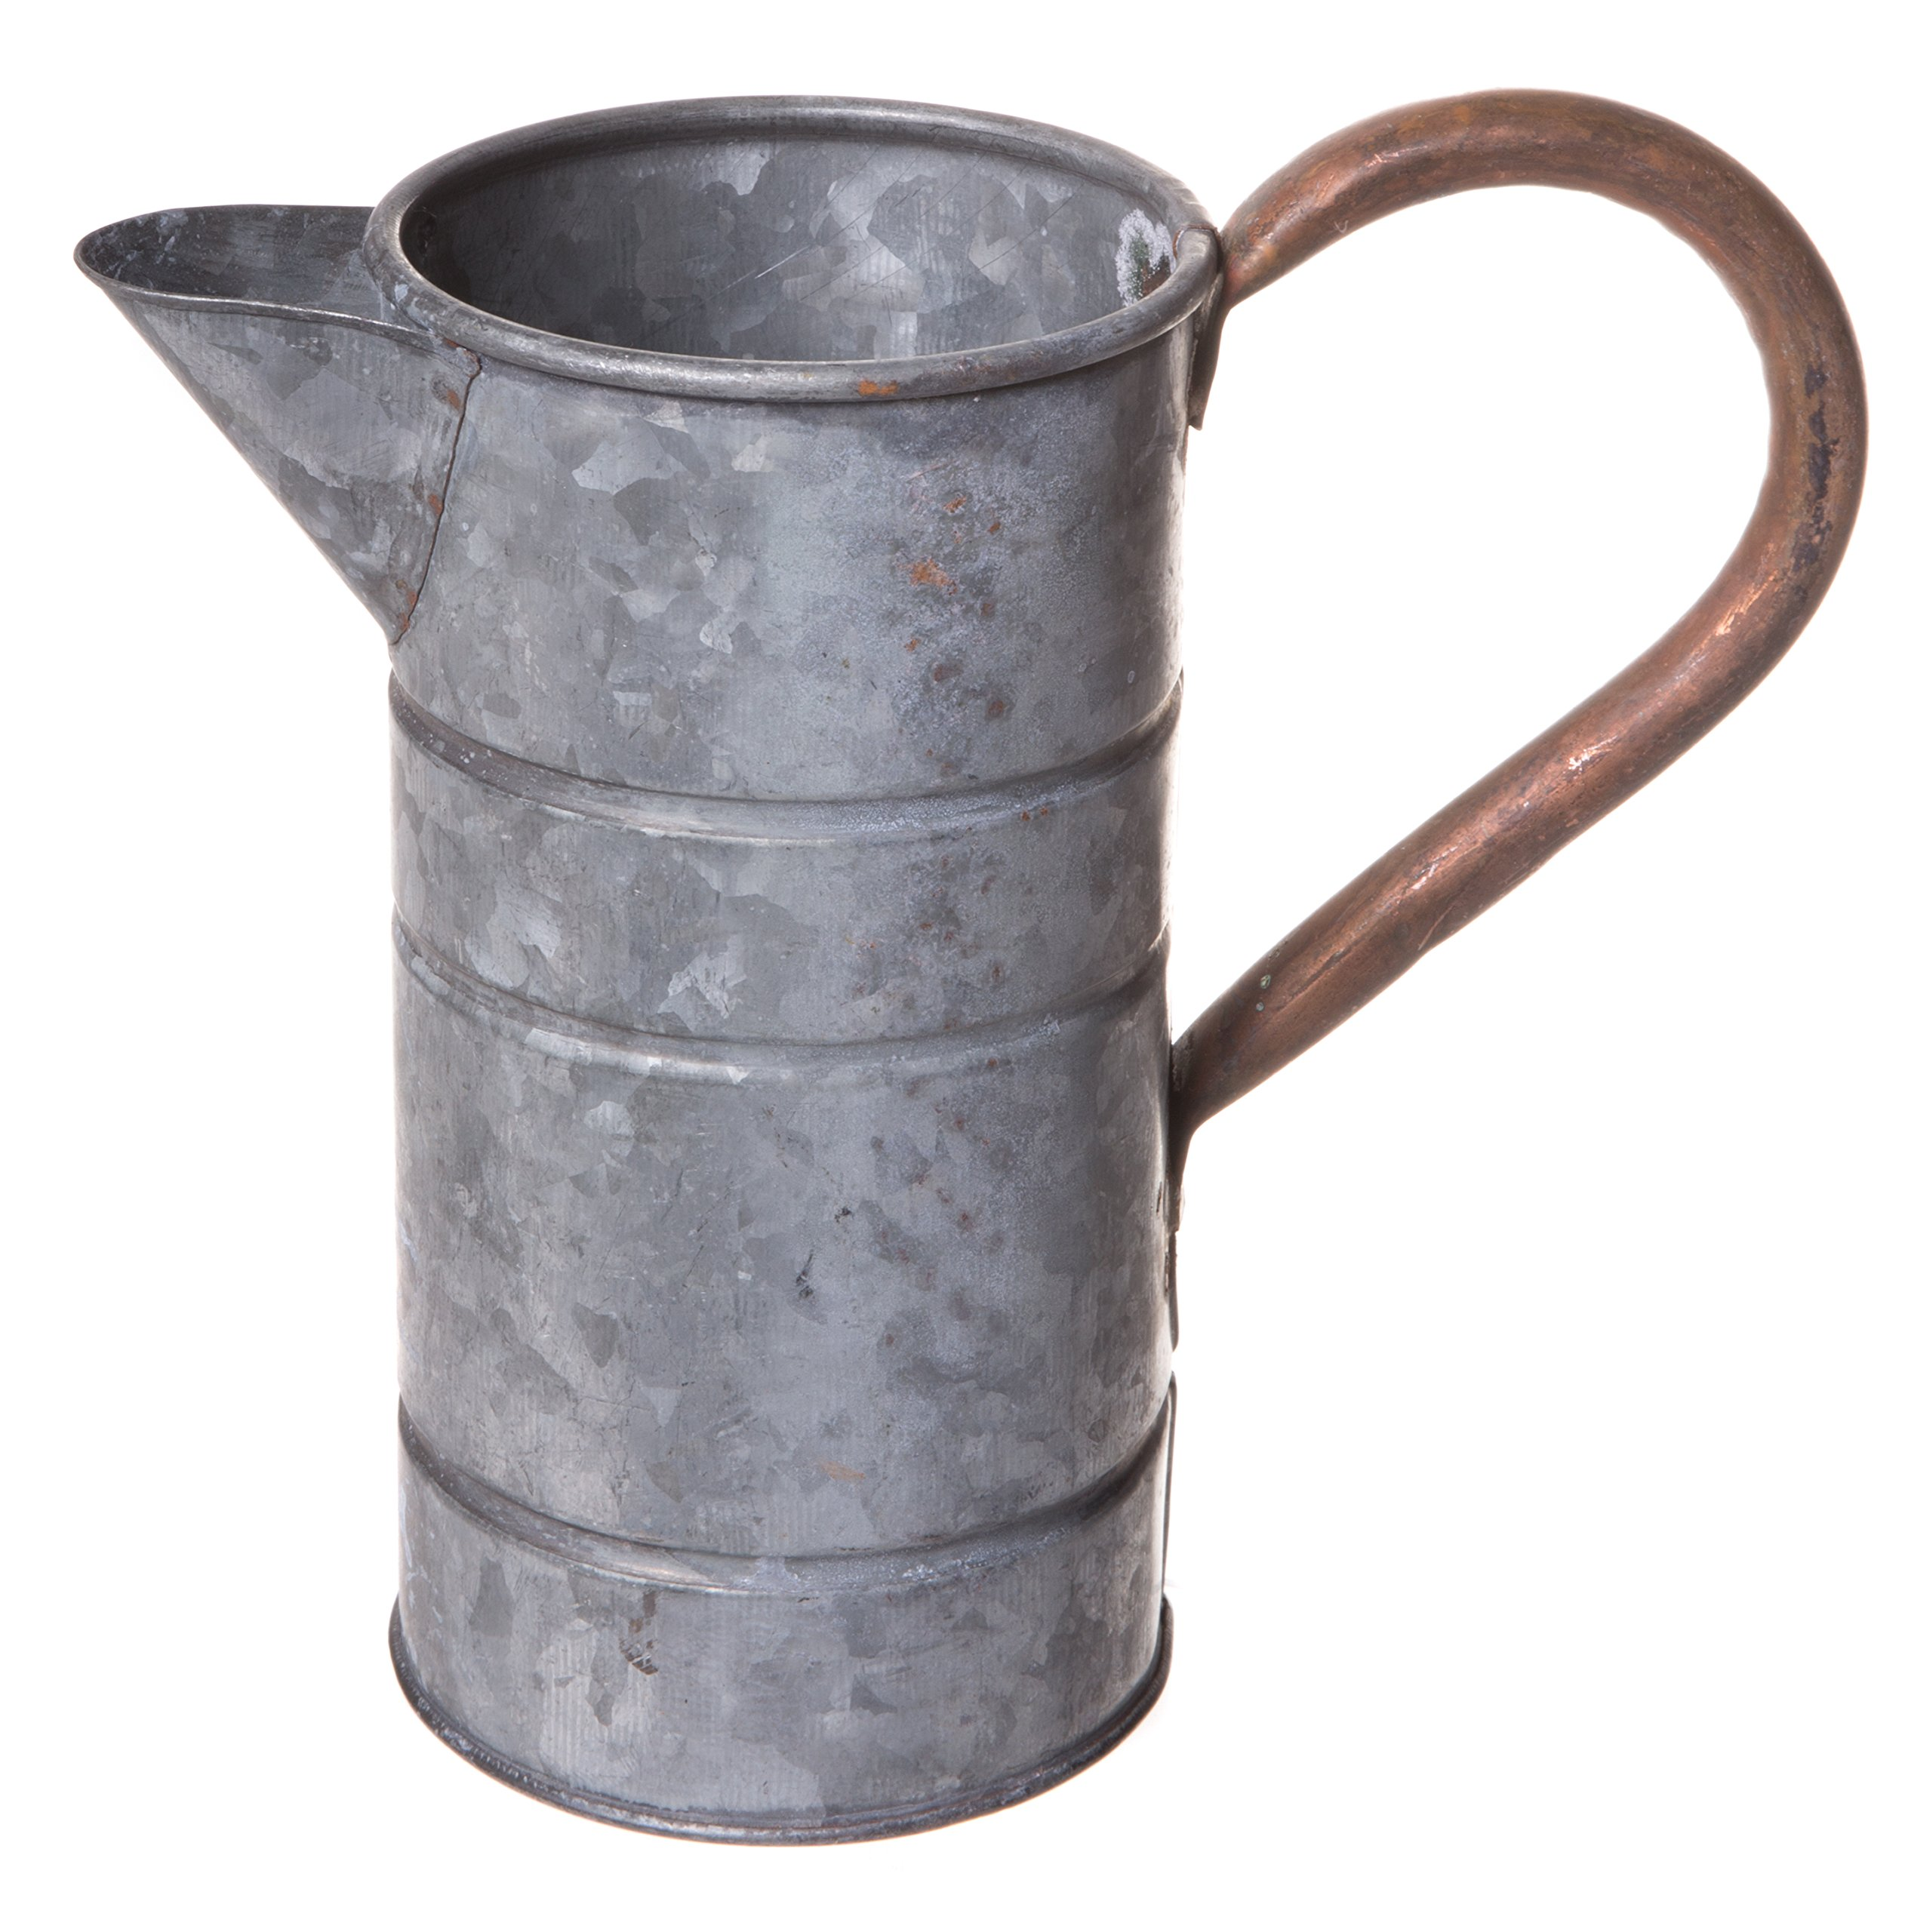 Rustic Galvanized Tin Watering Can, Decorative Pitcher, Vintage Plant Flower Vase, Small, 7-inch